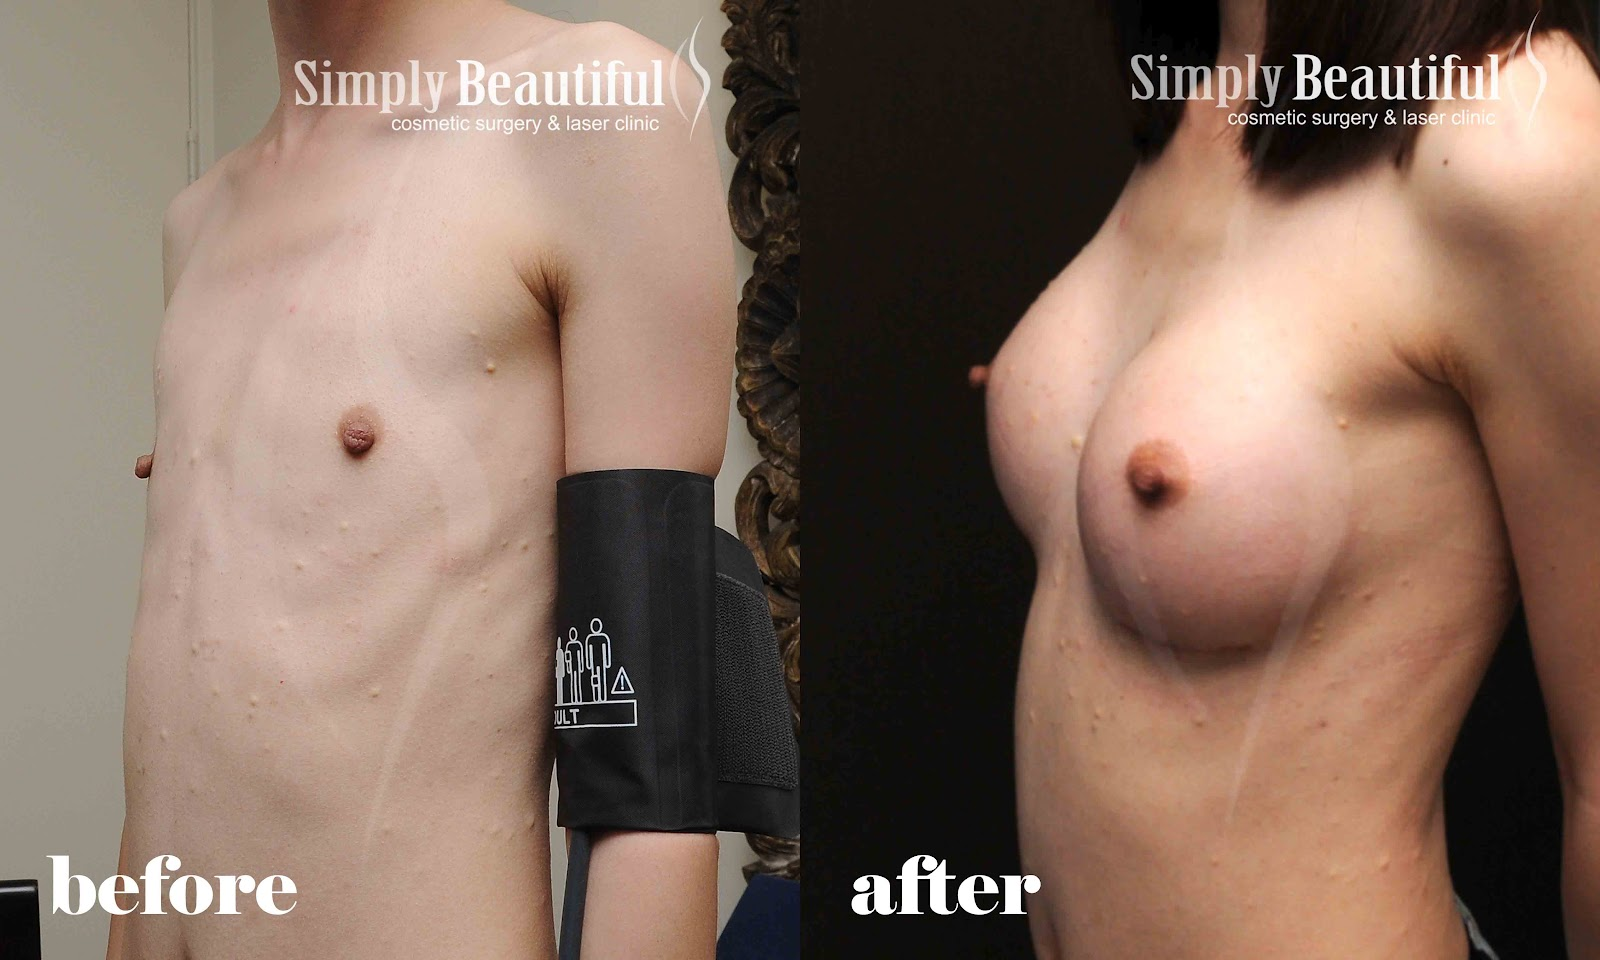 boob before and after jpg 1080x810